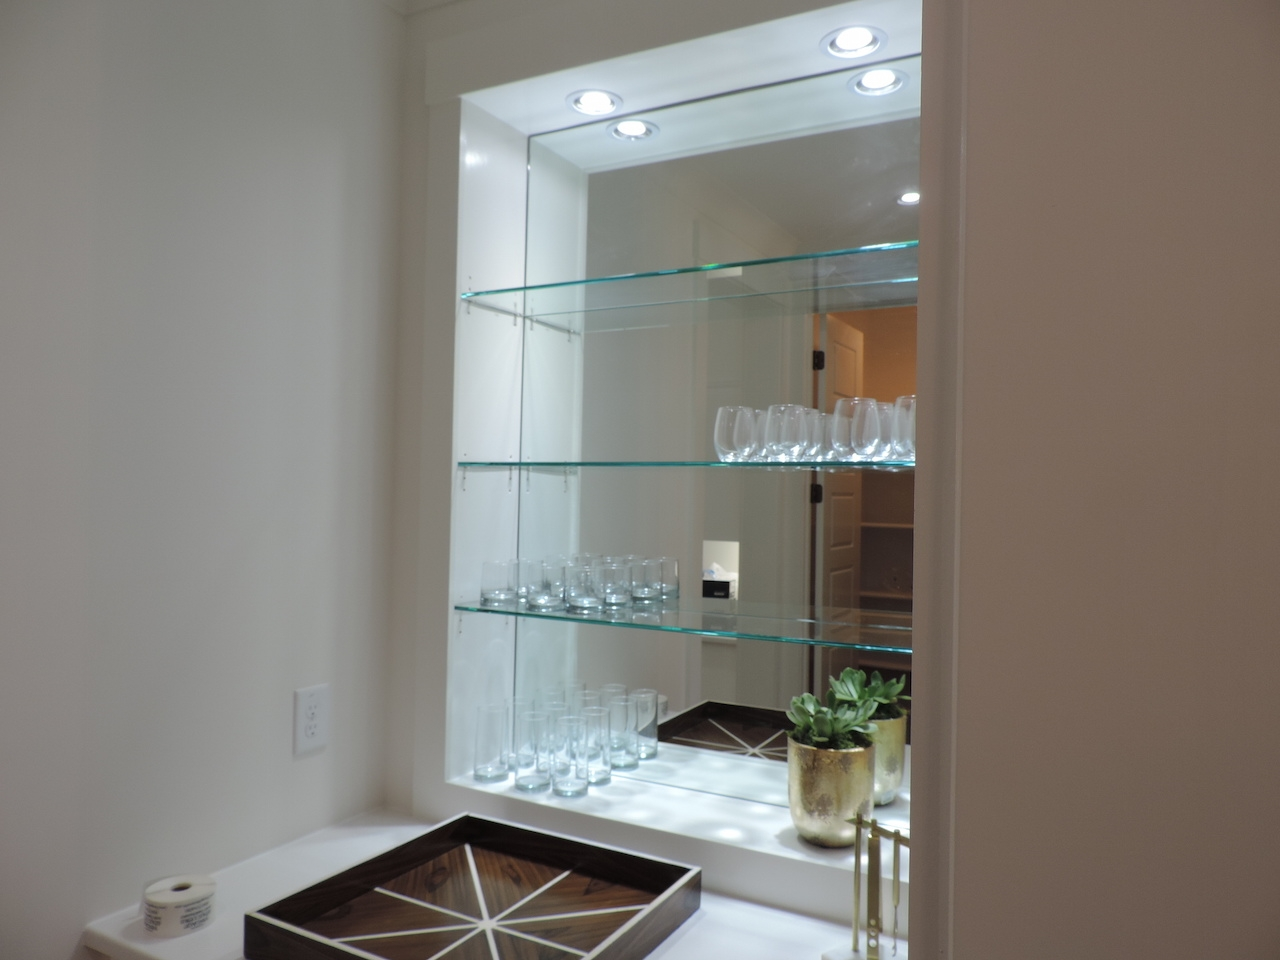 Decorative Custom Glass Shelves Home Decorations Inside Glass Shelving (View 7 of 15)